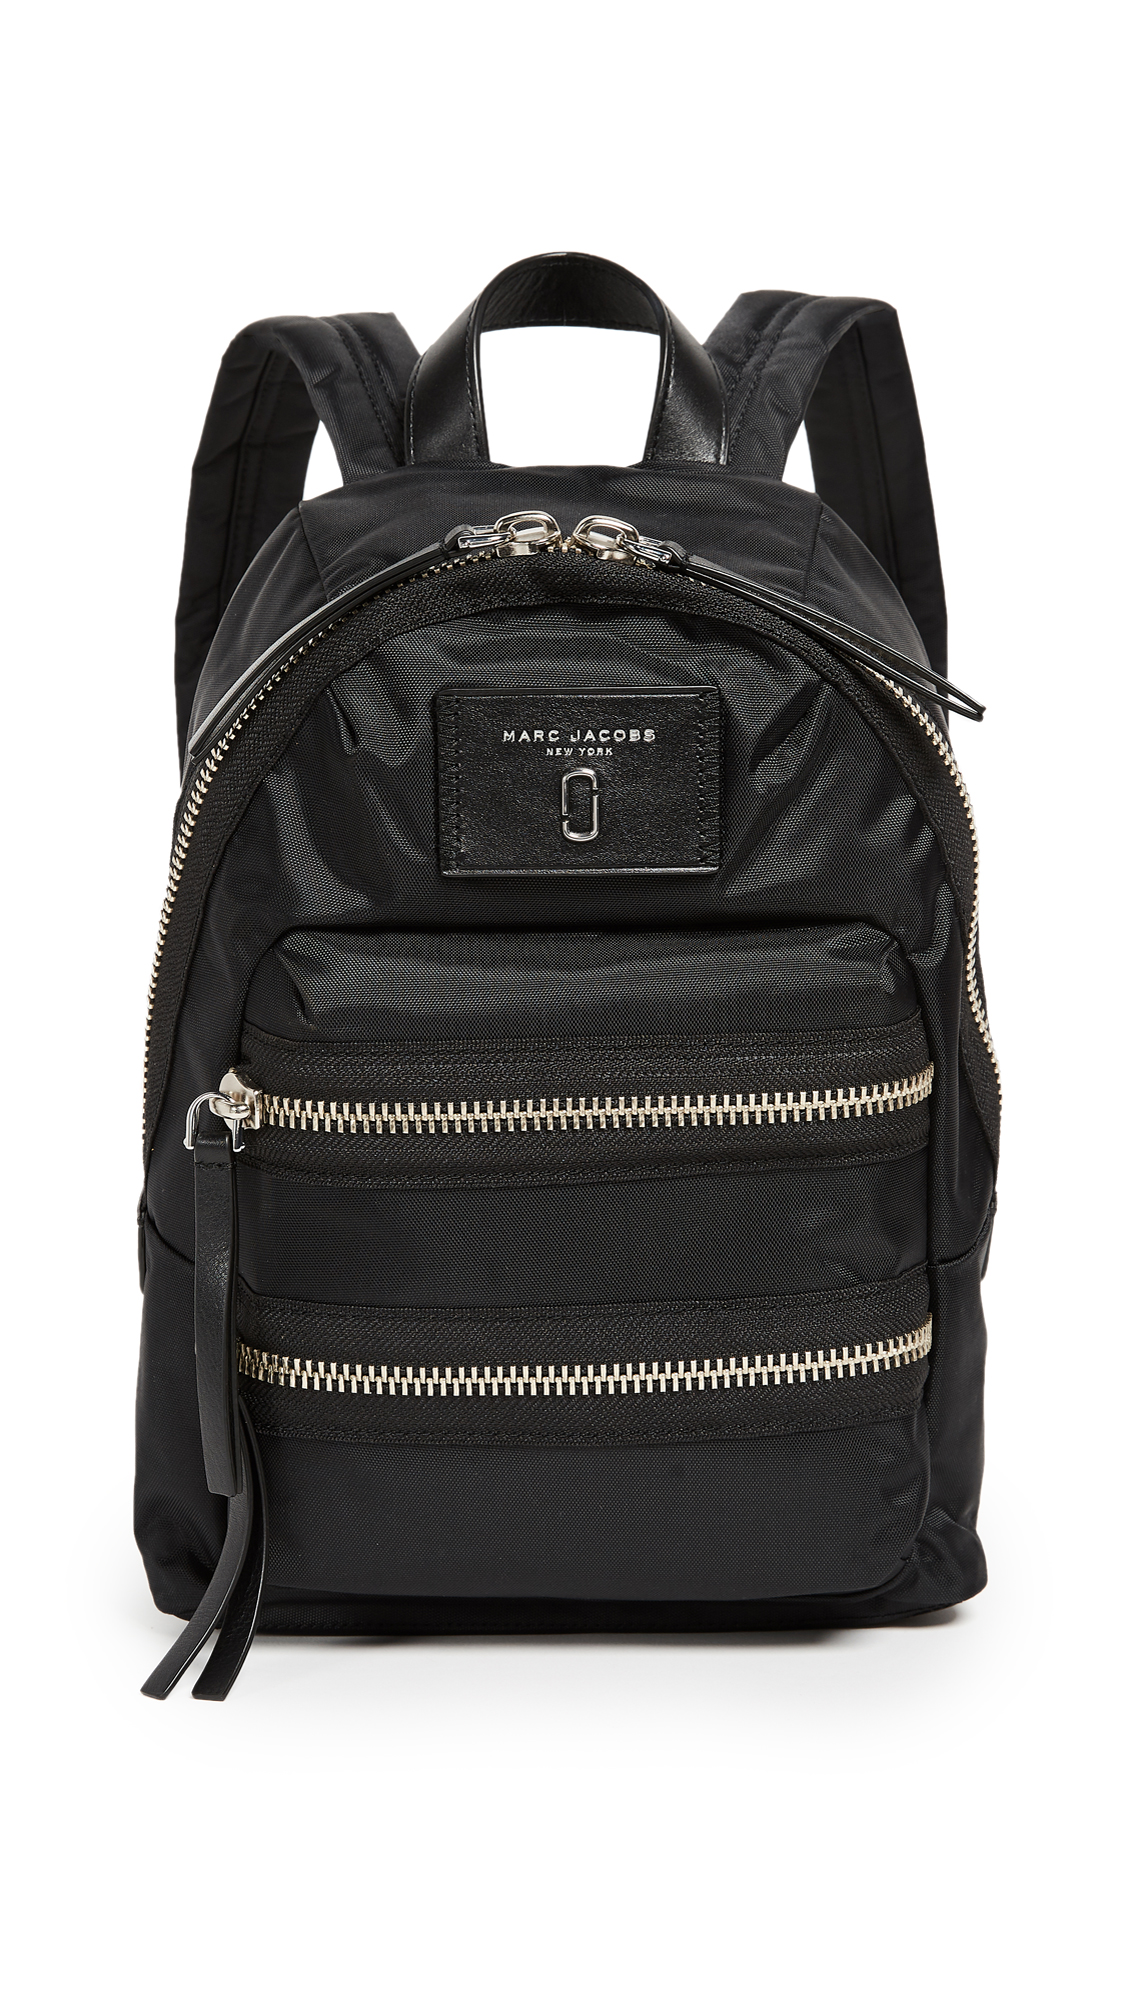 The Marc Jacobs Mini Nylon Biker Backpack